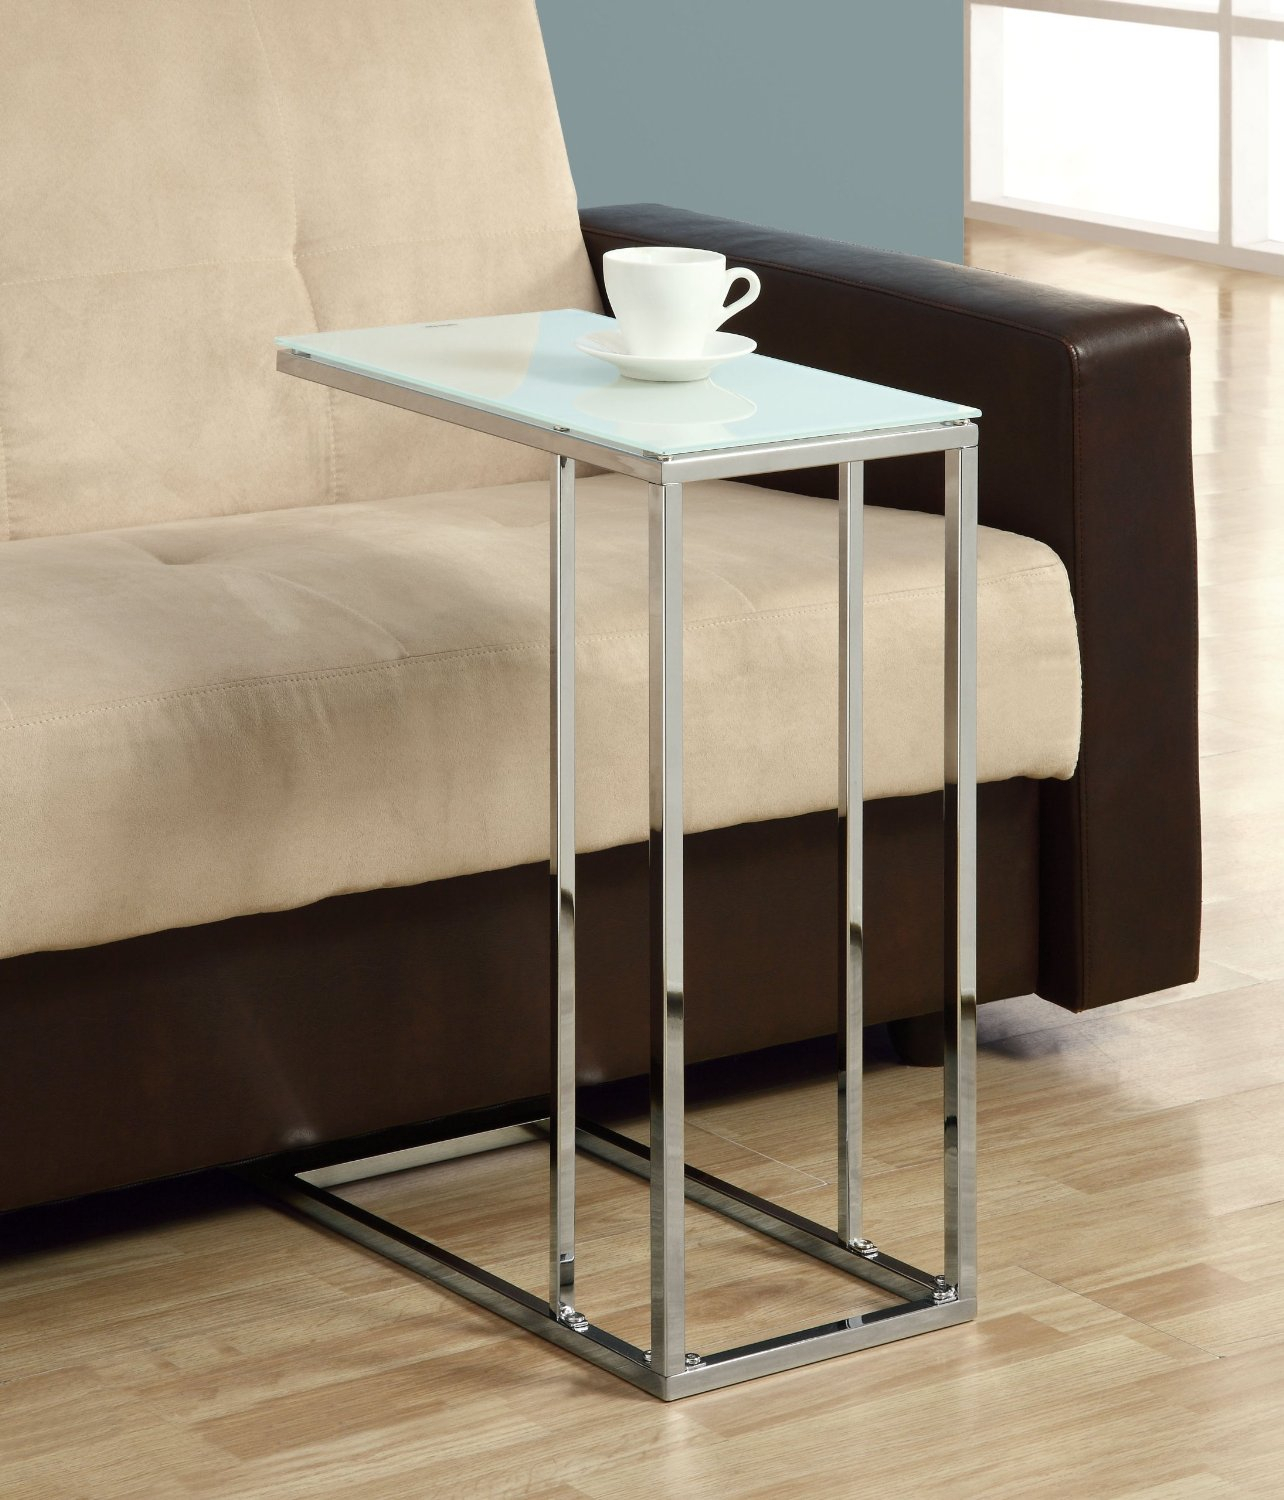 Glass Top Accent Table Metal Base – Glass Decorating Ideas Intended For Parsons Clear Glass Top & Brass Base 48x16 Console Tables (View 23 of 30)